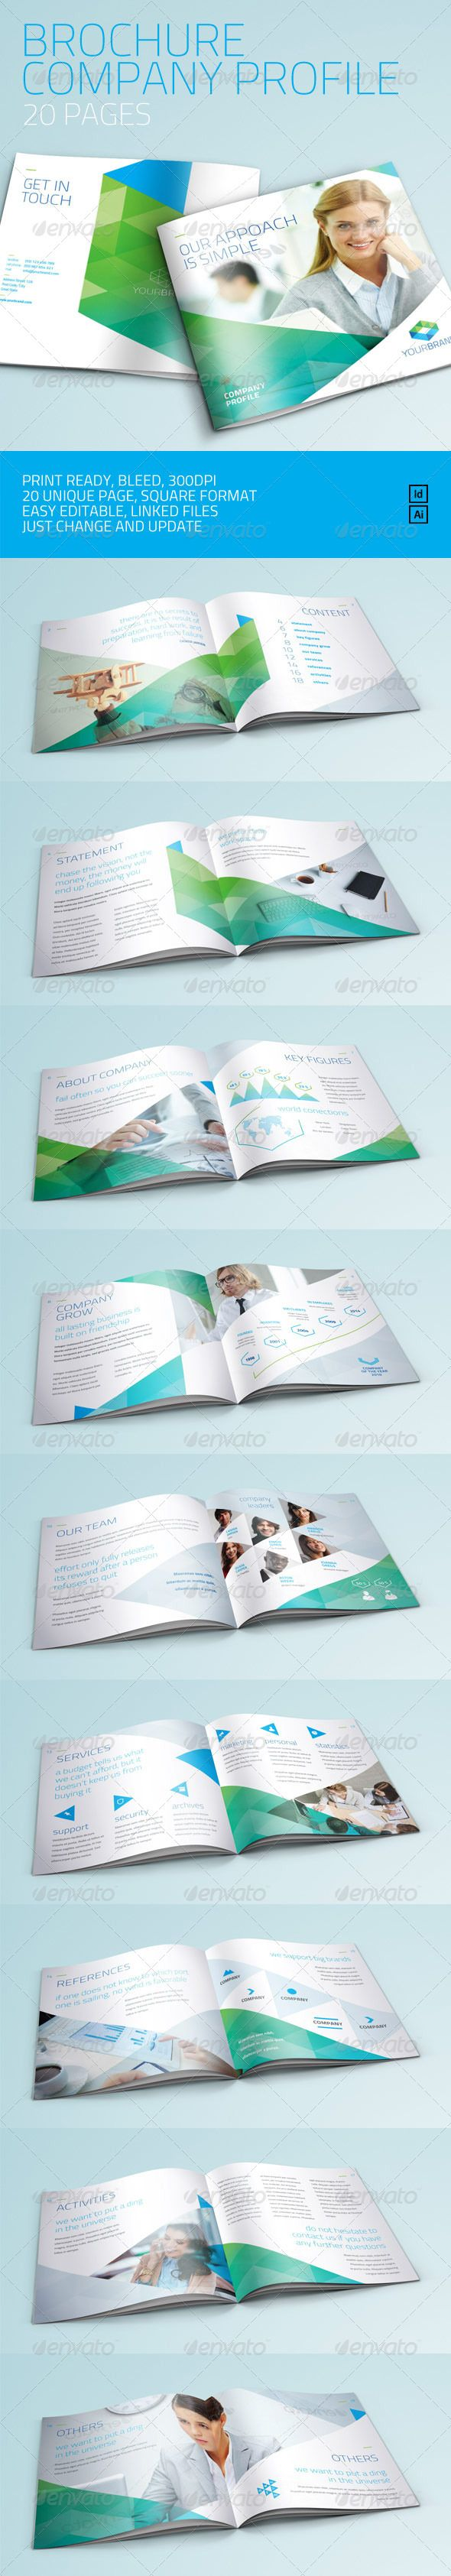 Brochure - Company Profile/Multi Purpose